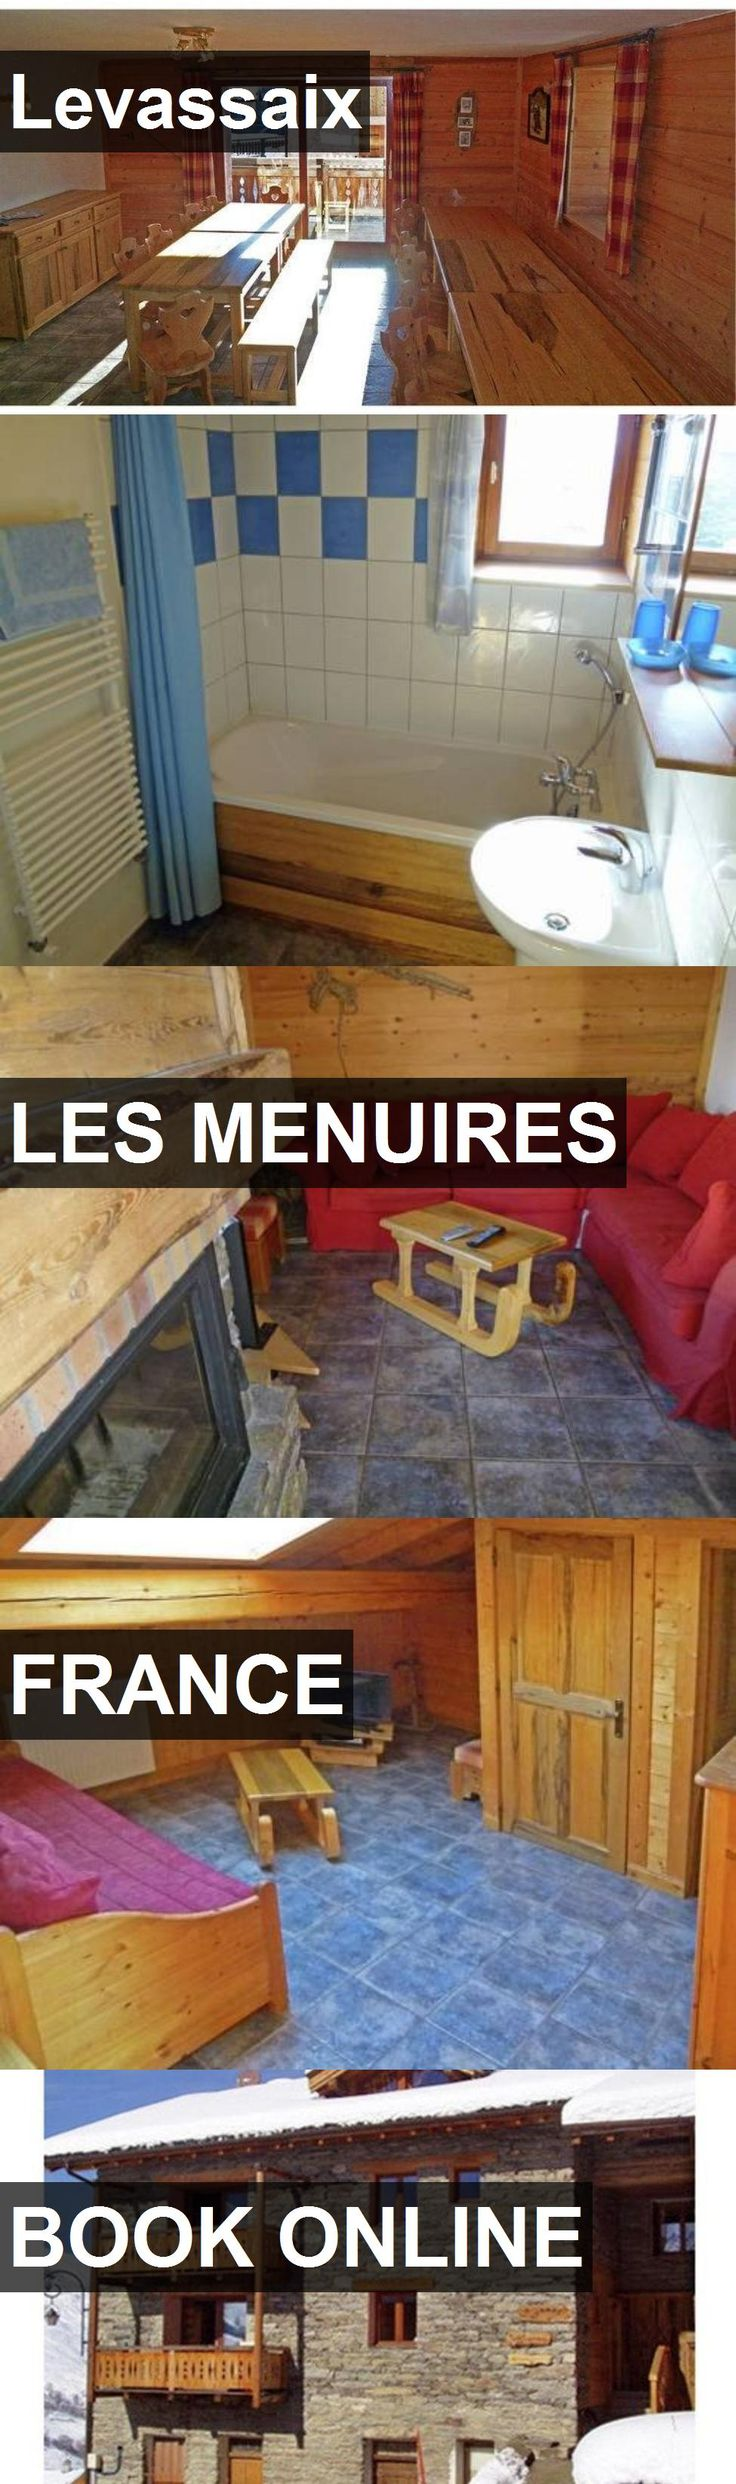 Hotel Levassaix in Les Menuires, France. For more information, photos, reviews and best prices please follow the link. #France #LesMenuires #travel #vacation #hotel